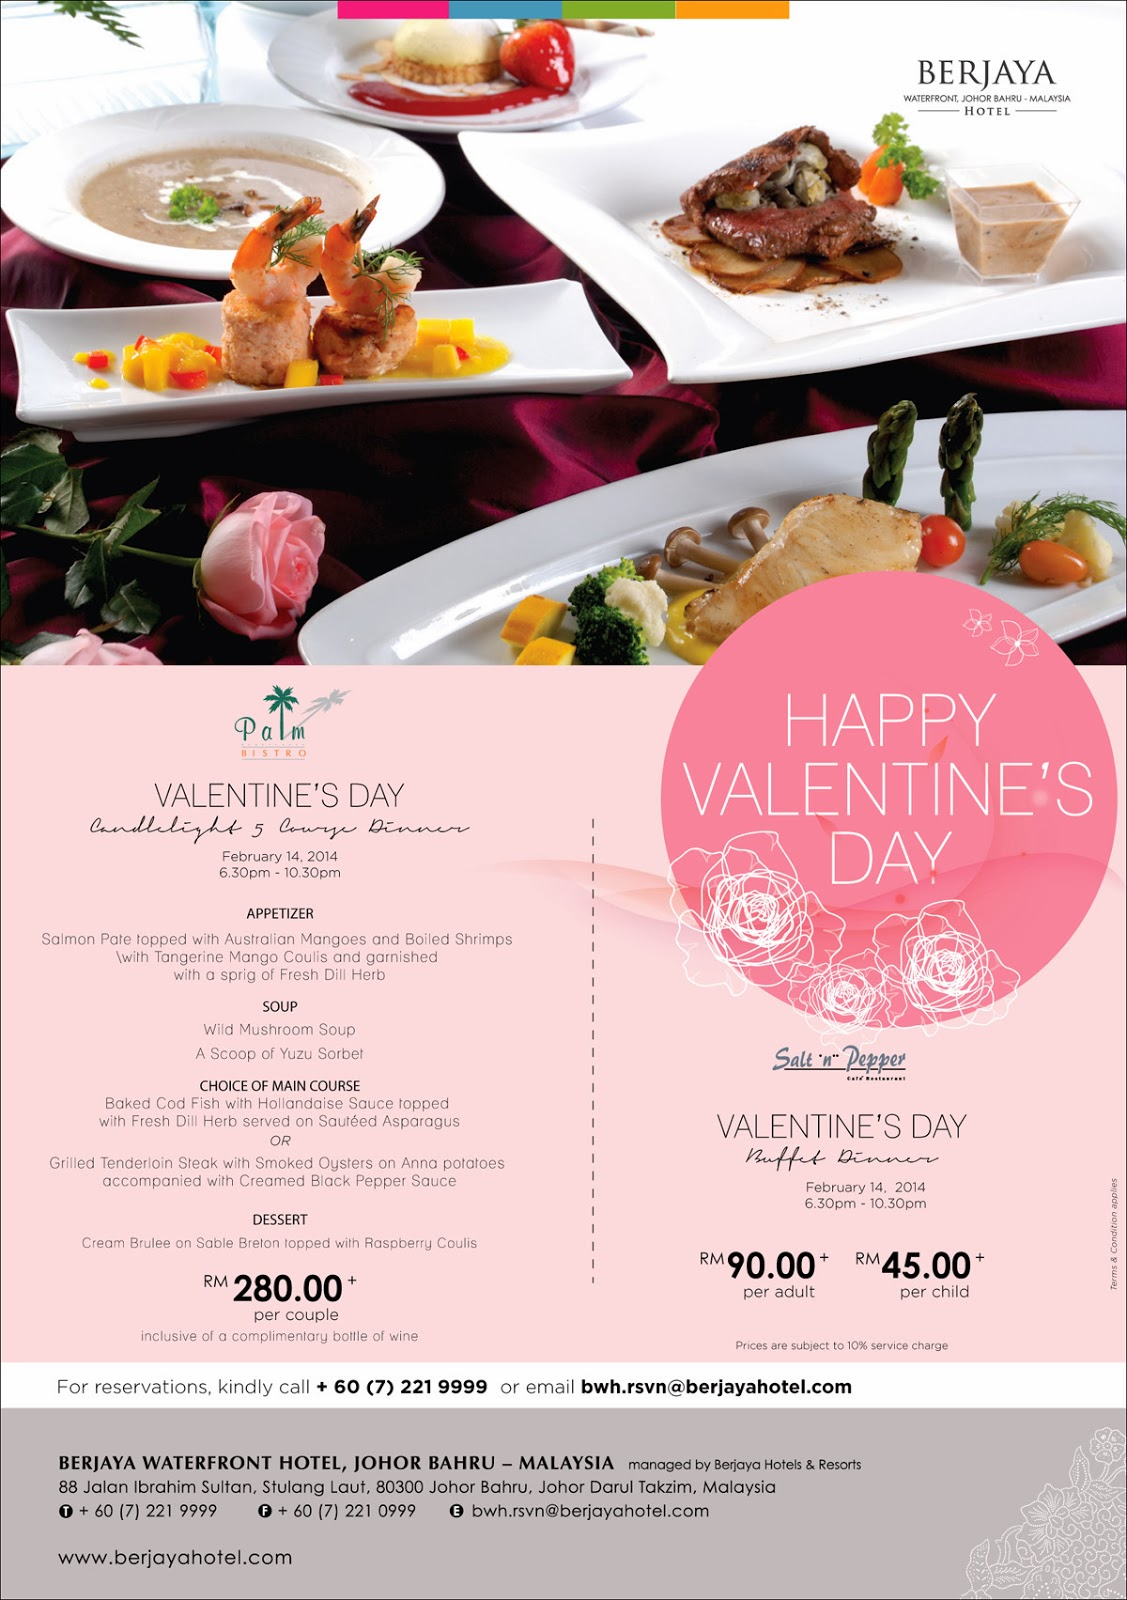 SHARE THE LOVE THIS VALENTINE'S DAY AT BERJAYA WATERFRONT HOTEL